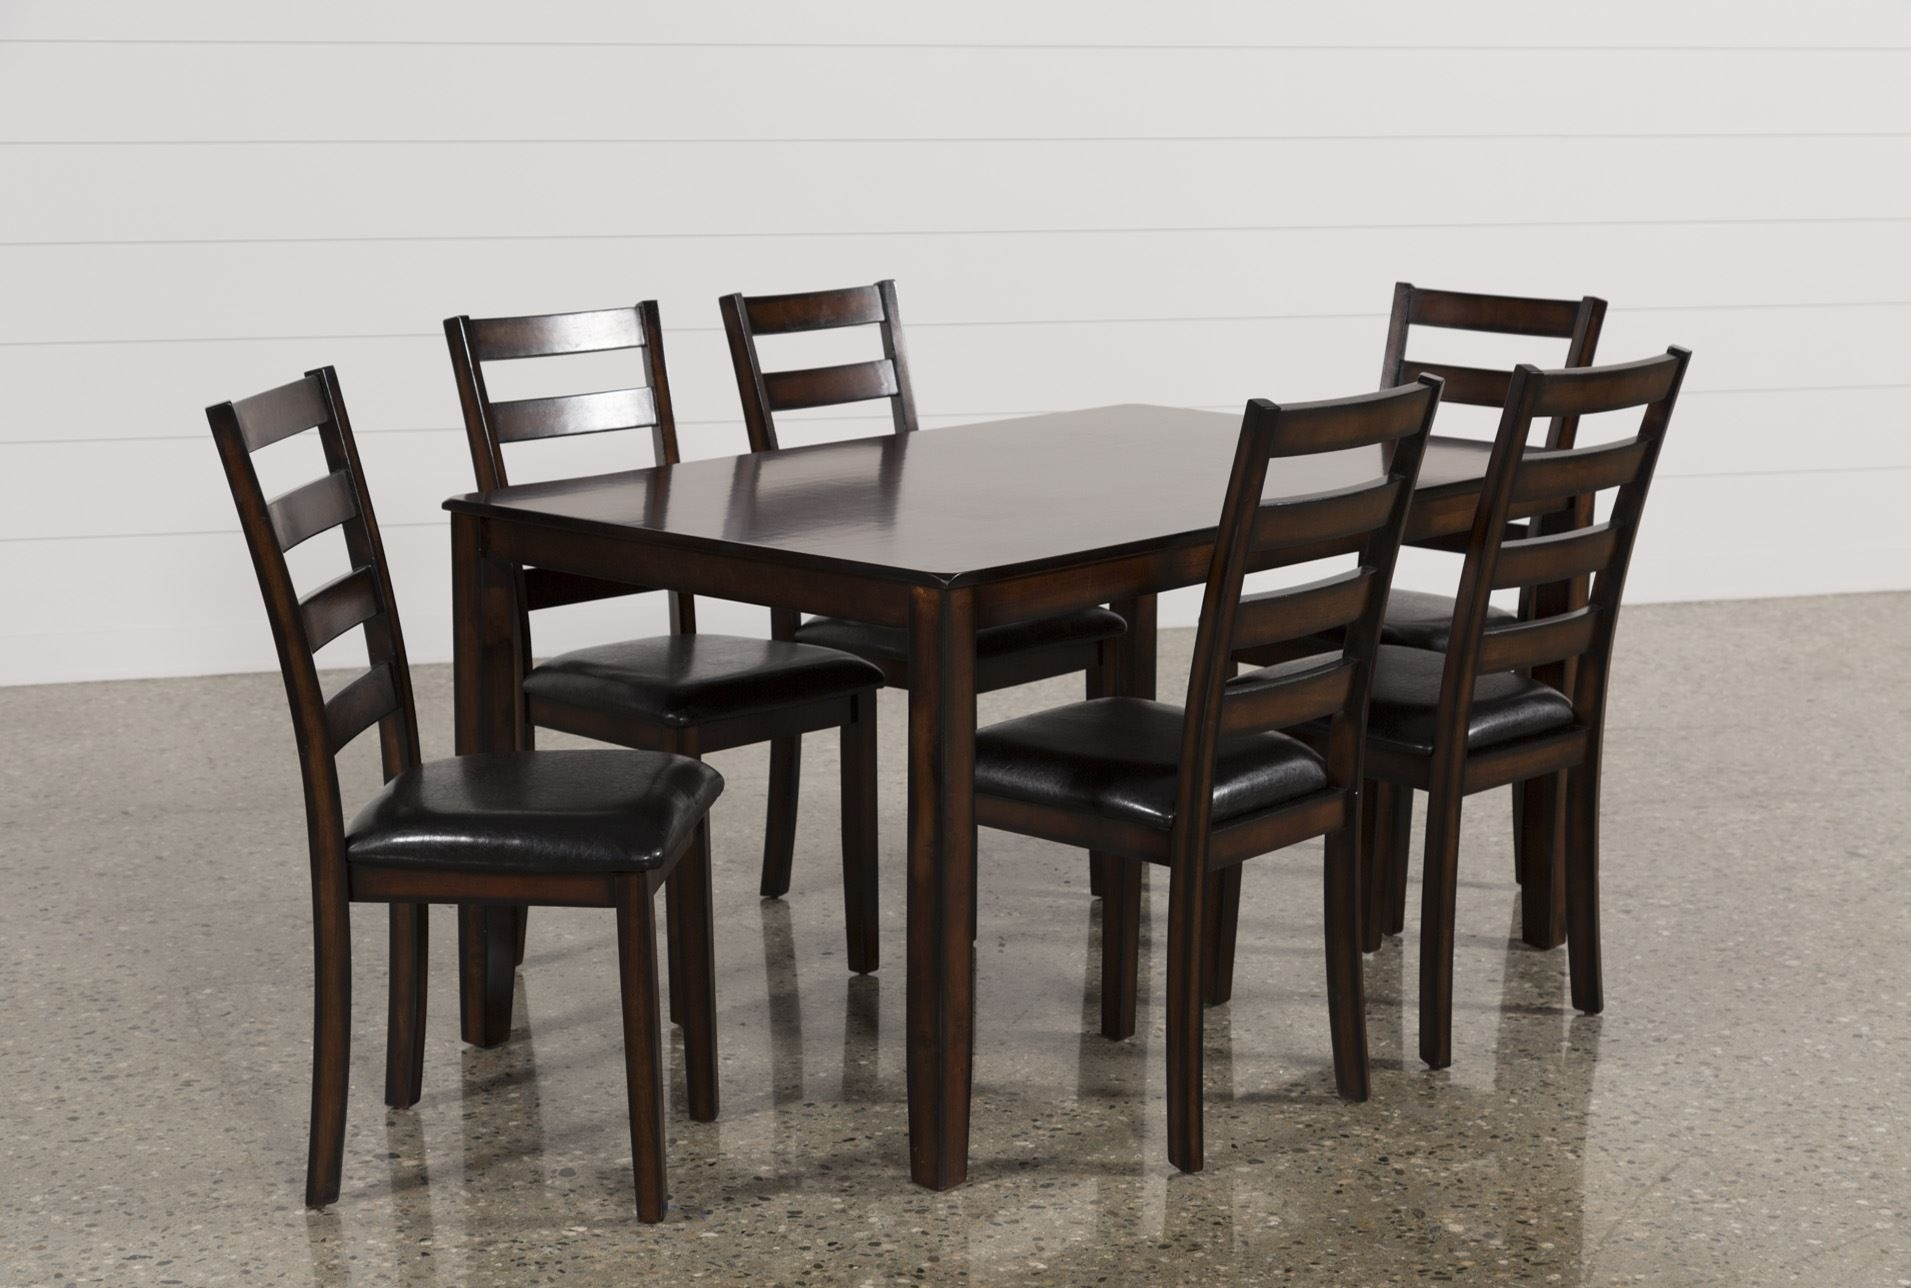 Sawyer 7 Piece Dining Set – Signature | Homestyle | Pinterest Pertaining To 2017 Craftsman 7 Piece Rectangle Extension Dining Sets With Side Chairs (View 13 of 20)